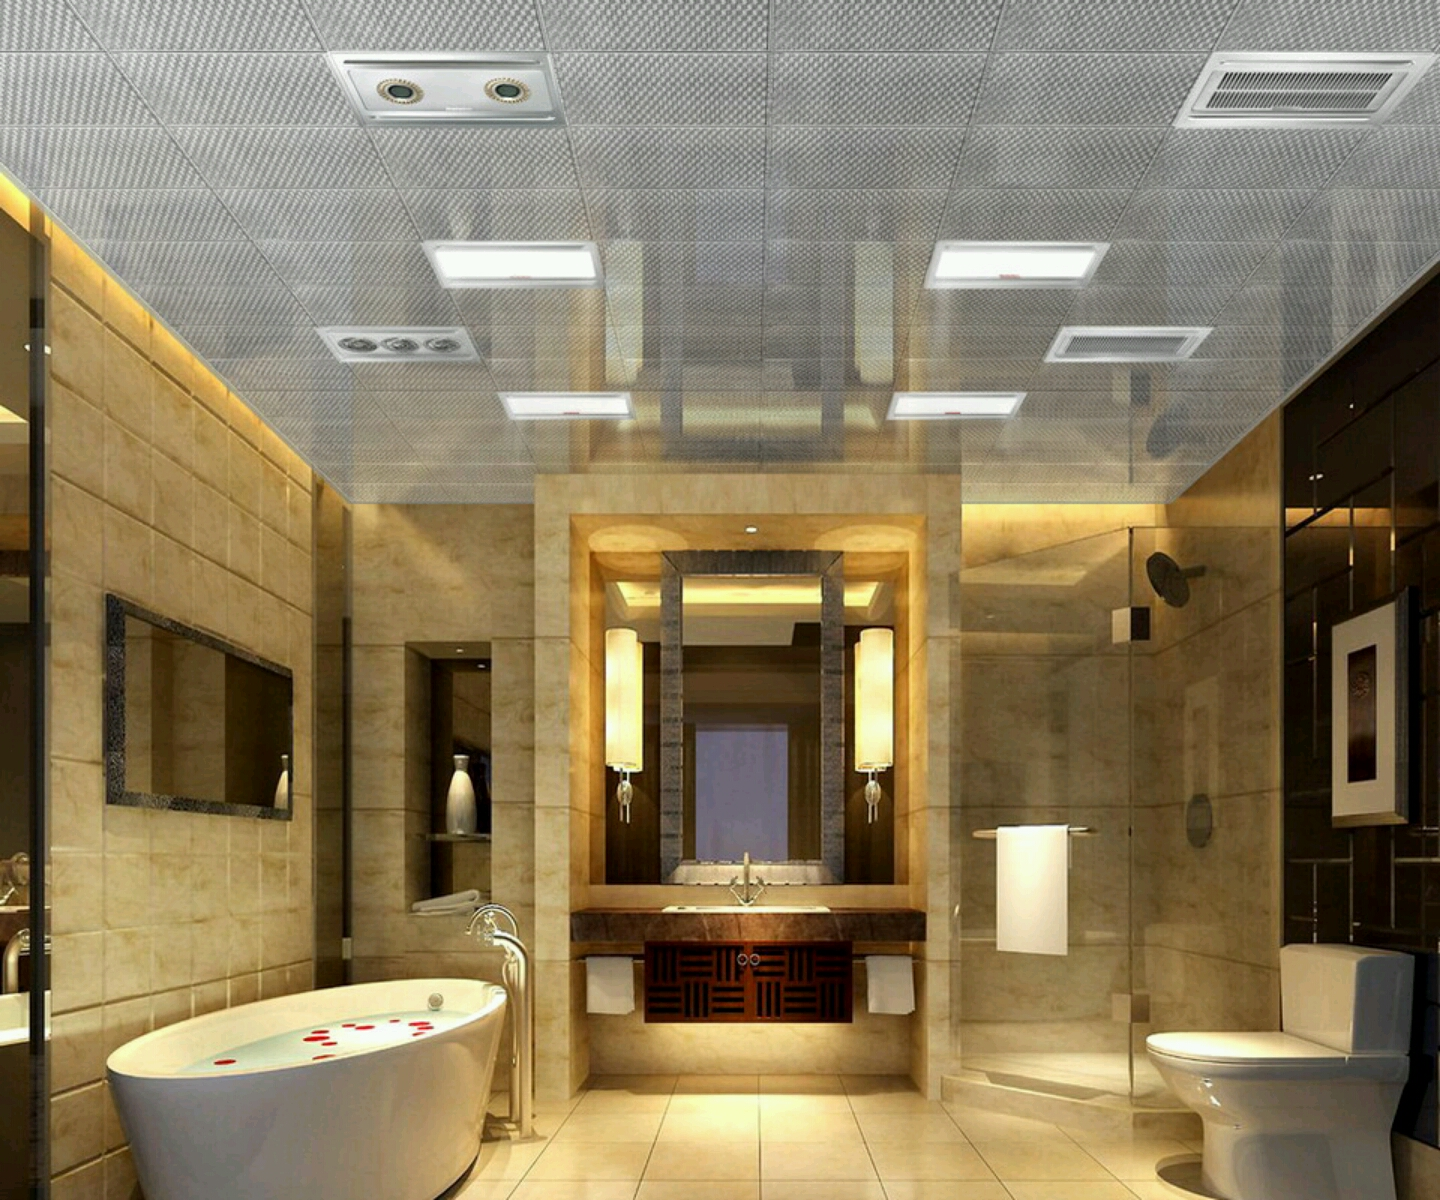 New home designs latest luxury bathrooms designs ideas for Exclusive bathroom designs